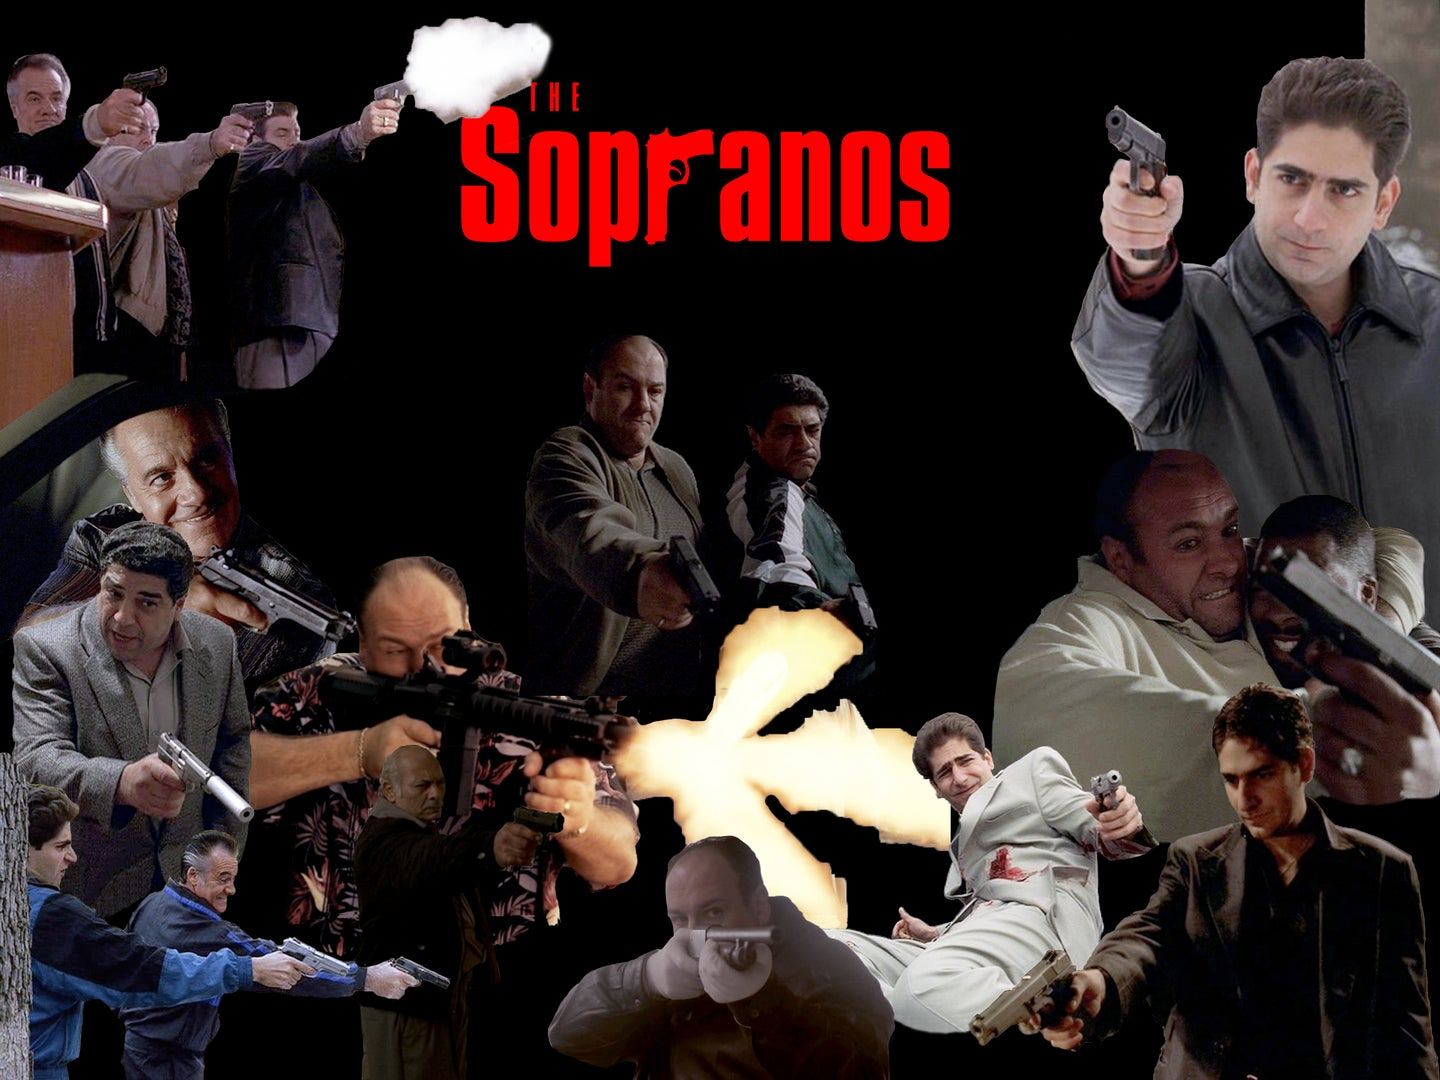 The Sopranos aired from 1999 - 2007 on HBO and was the cable networks first smash success show, leading to an era of original shows on premium channels. A prequel to the show, The Many Saints of Newark will be released in September.